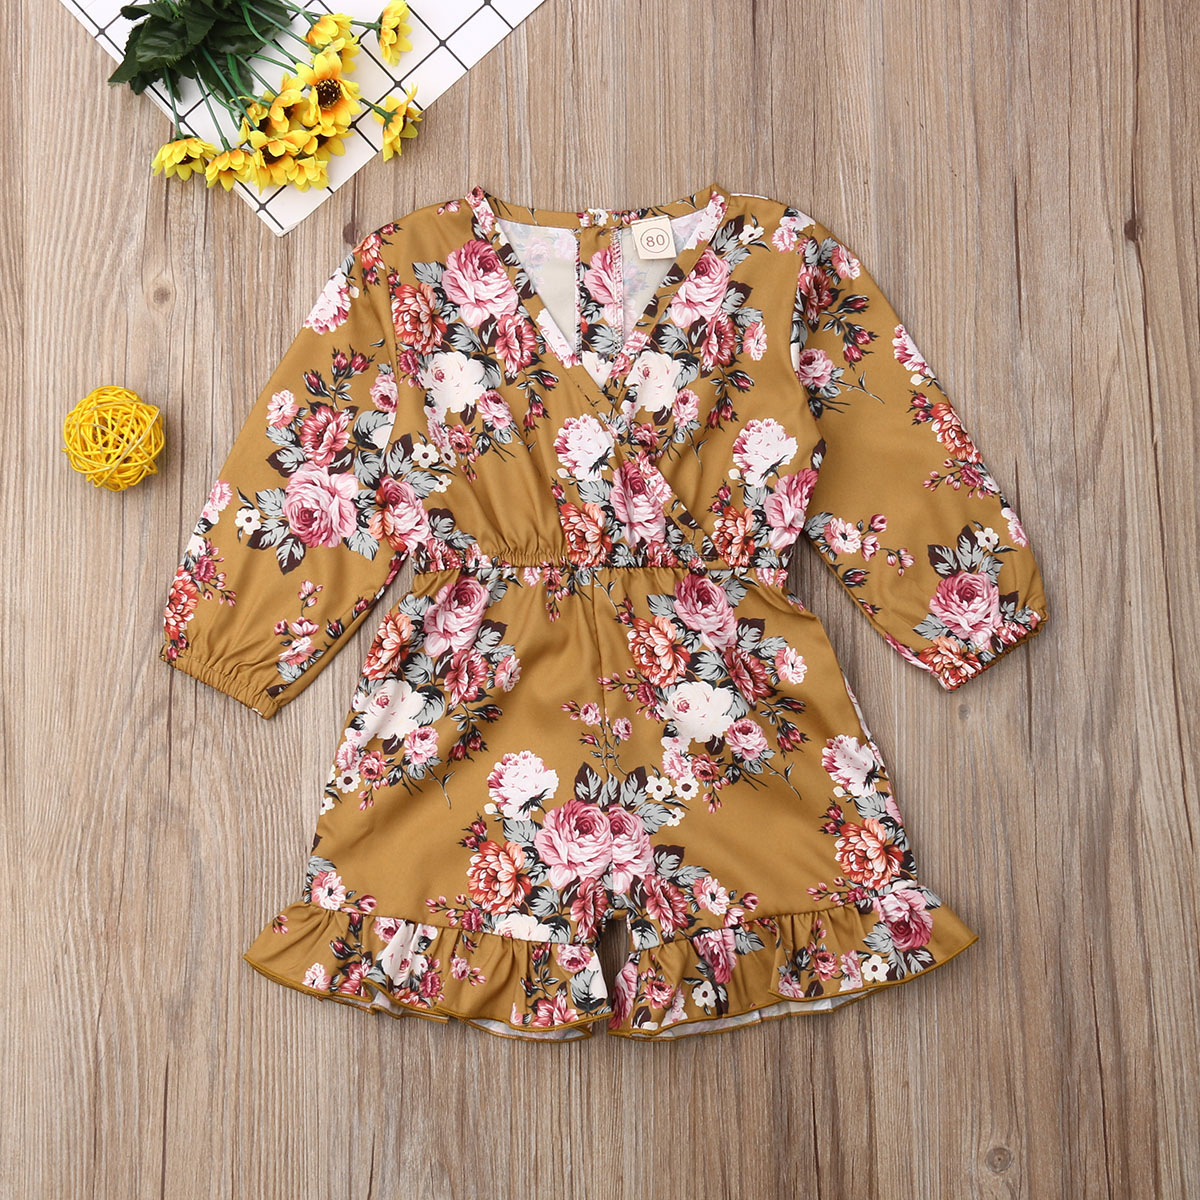 Emmababy Newborn Baby Girl Clothes Flower Print Long Sleeve Ruffle Romper Jumpsuit One-Piece Outfit Sunsuit Clothes Summer